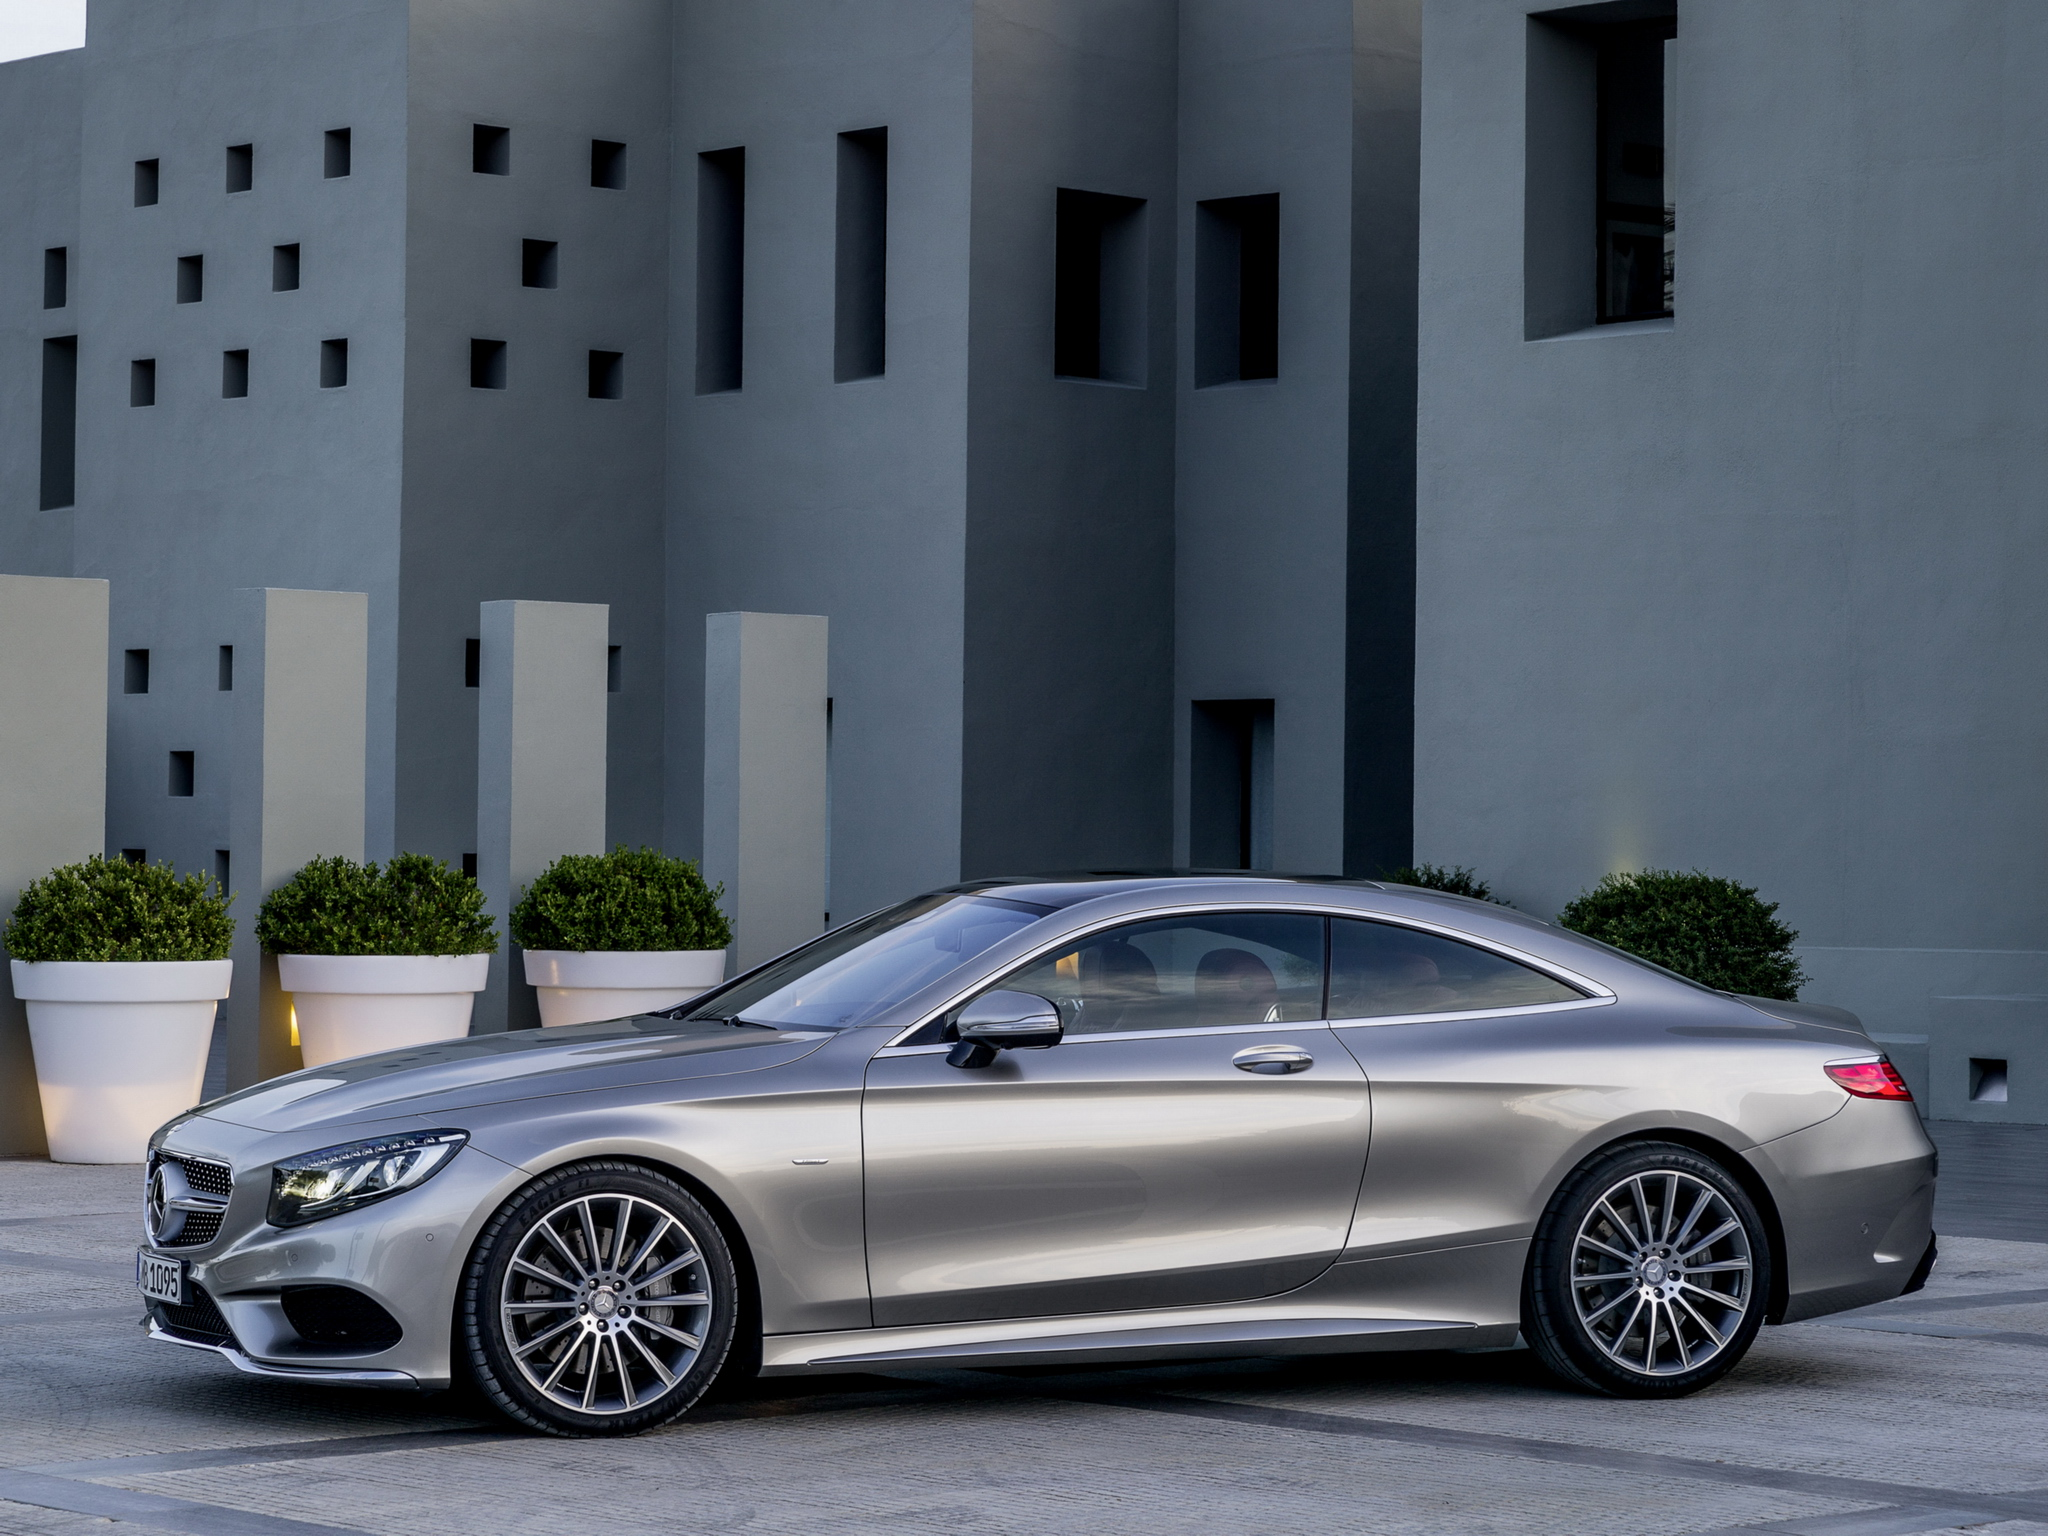 2015 mercedes benz s class coupe c217 first official images photo gallery autoevolution. Black Bedroom Furniture Sets. Home Design Ideas